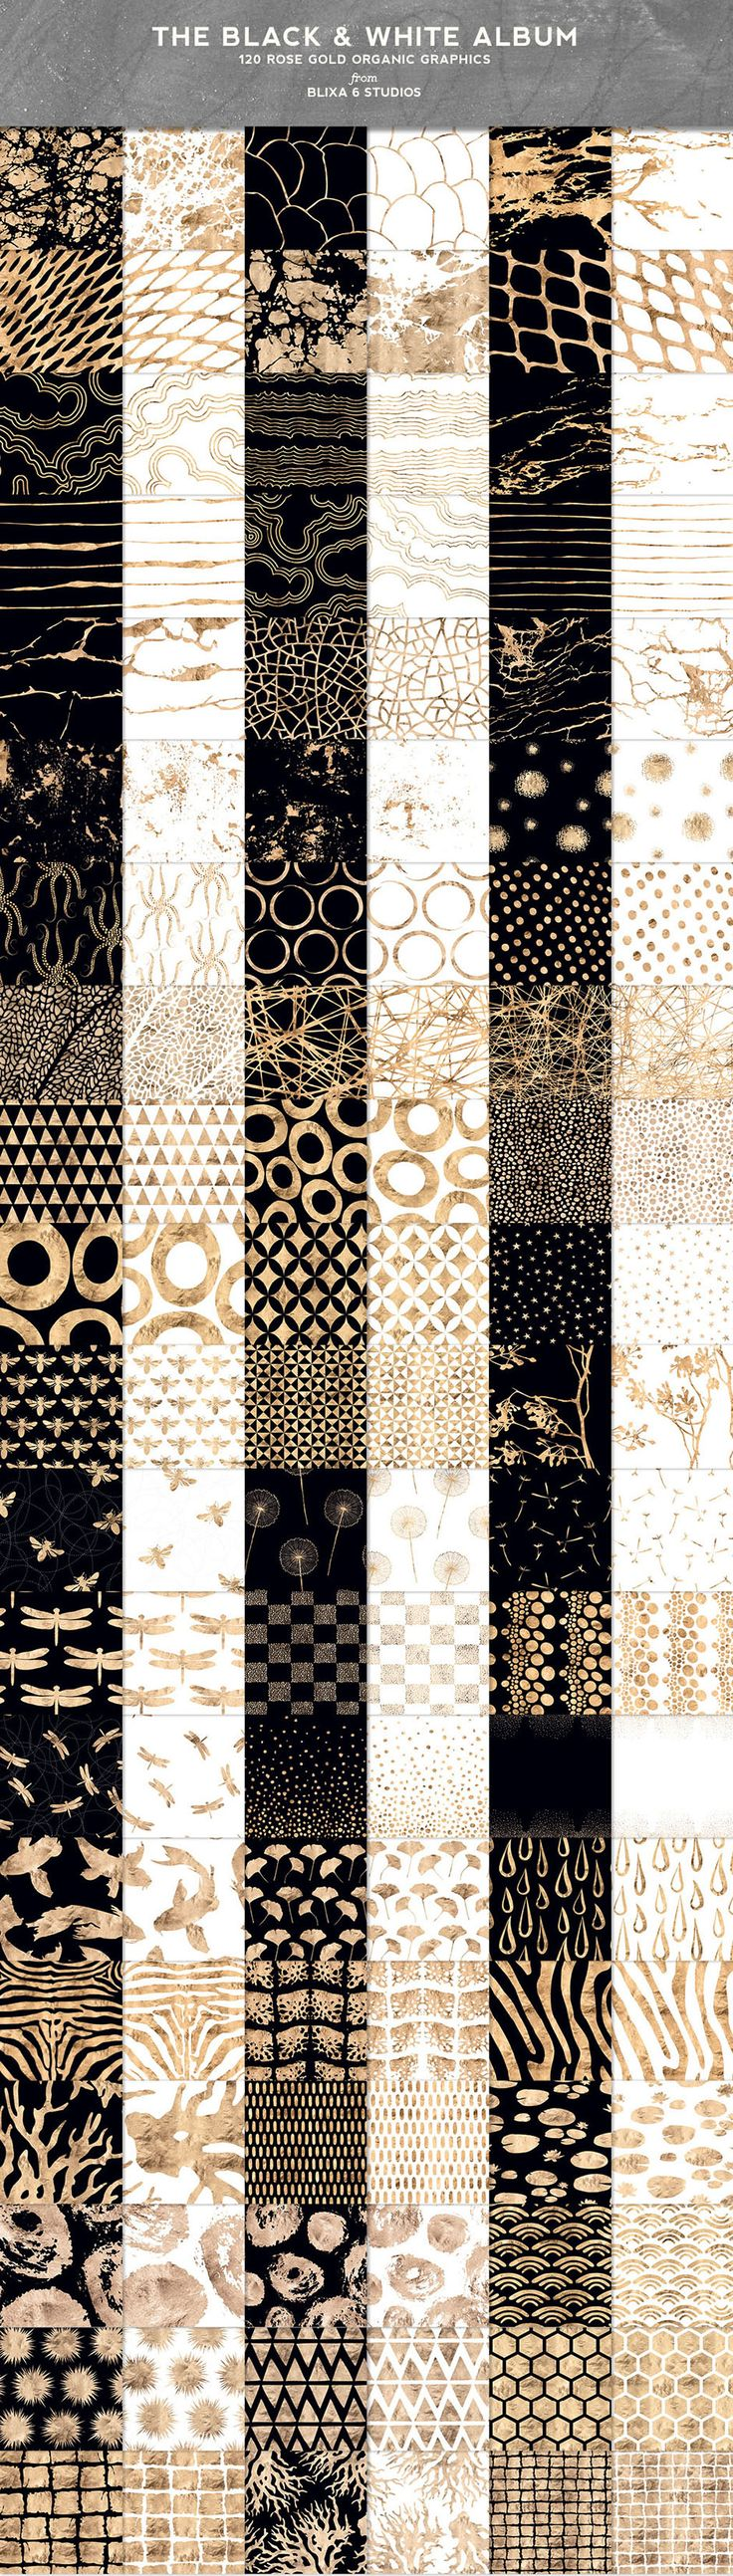 Elegant Metallic Patterns To Add Depth To Your Designs With For this golden box of black and white graphic goodness, I've gathered together some of my most beloved rose gold marble, coral, mineral, animal and organic geometric patterns placed them on pure white and rich black backgrounds. When I say white, I mean flat snow ... read more